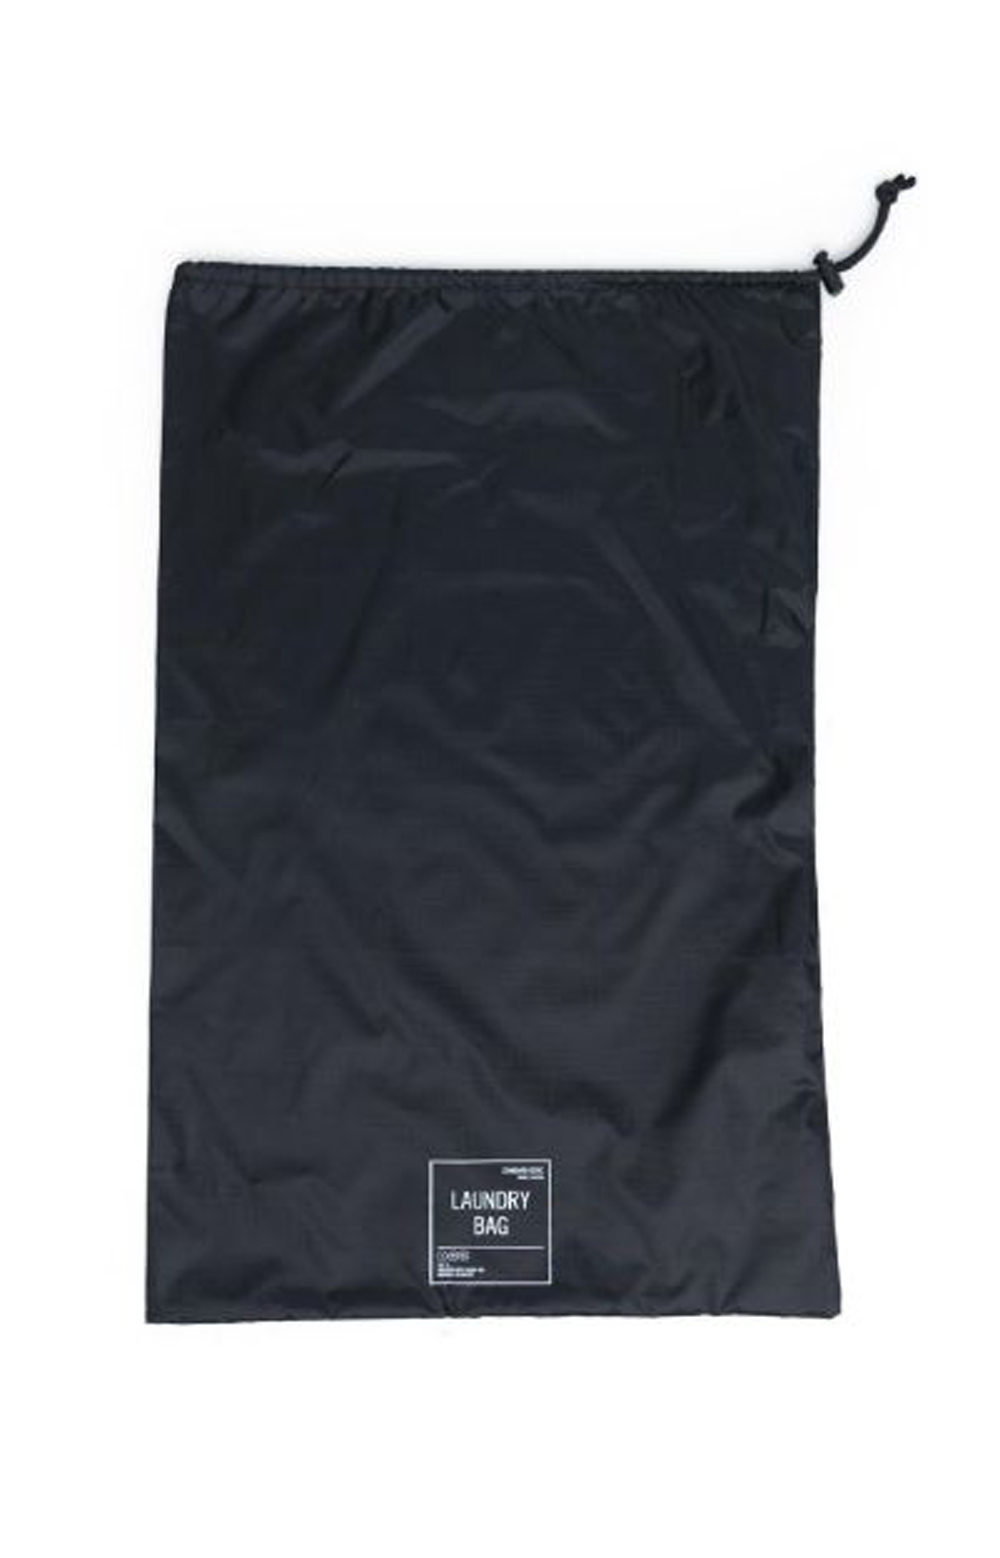 Laundry / Shoe Bag Set - Black 2